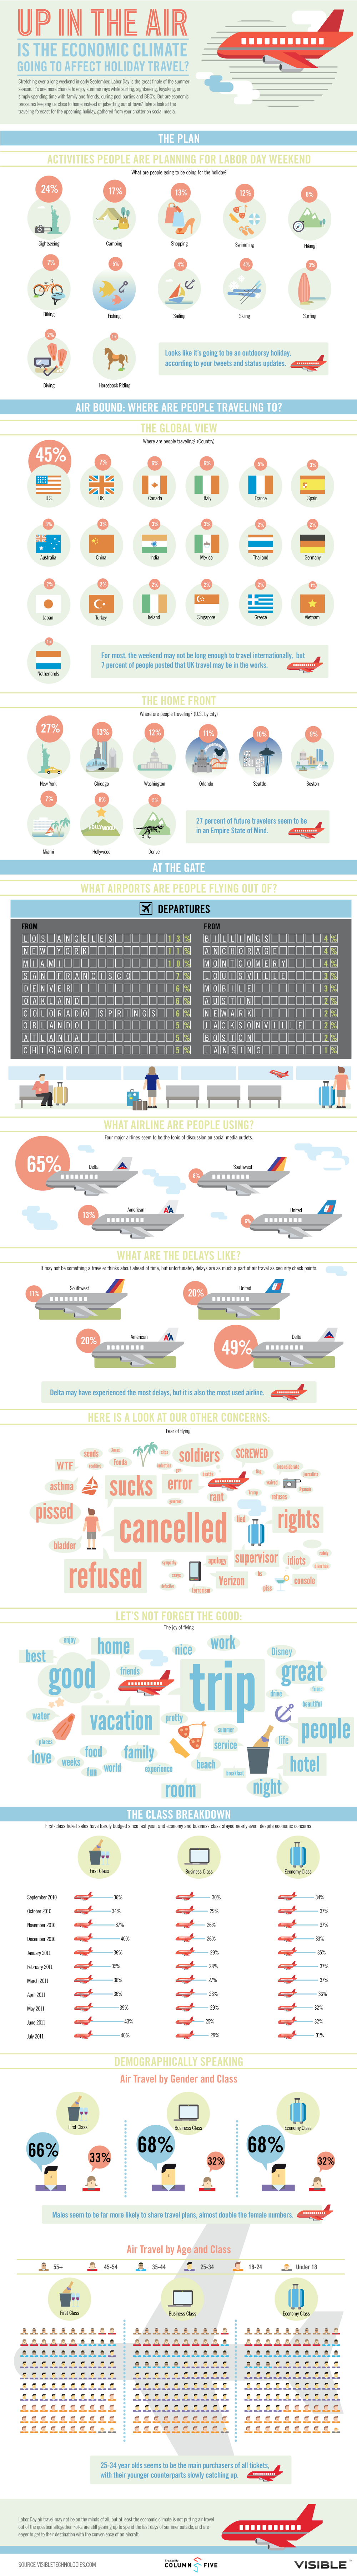 Labor Day Travel Infographic